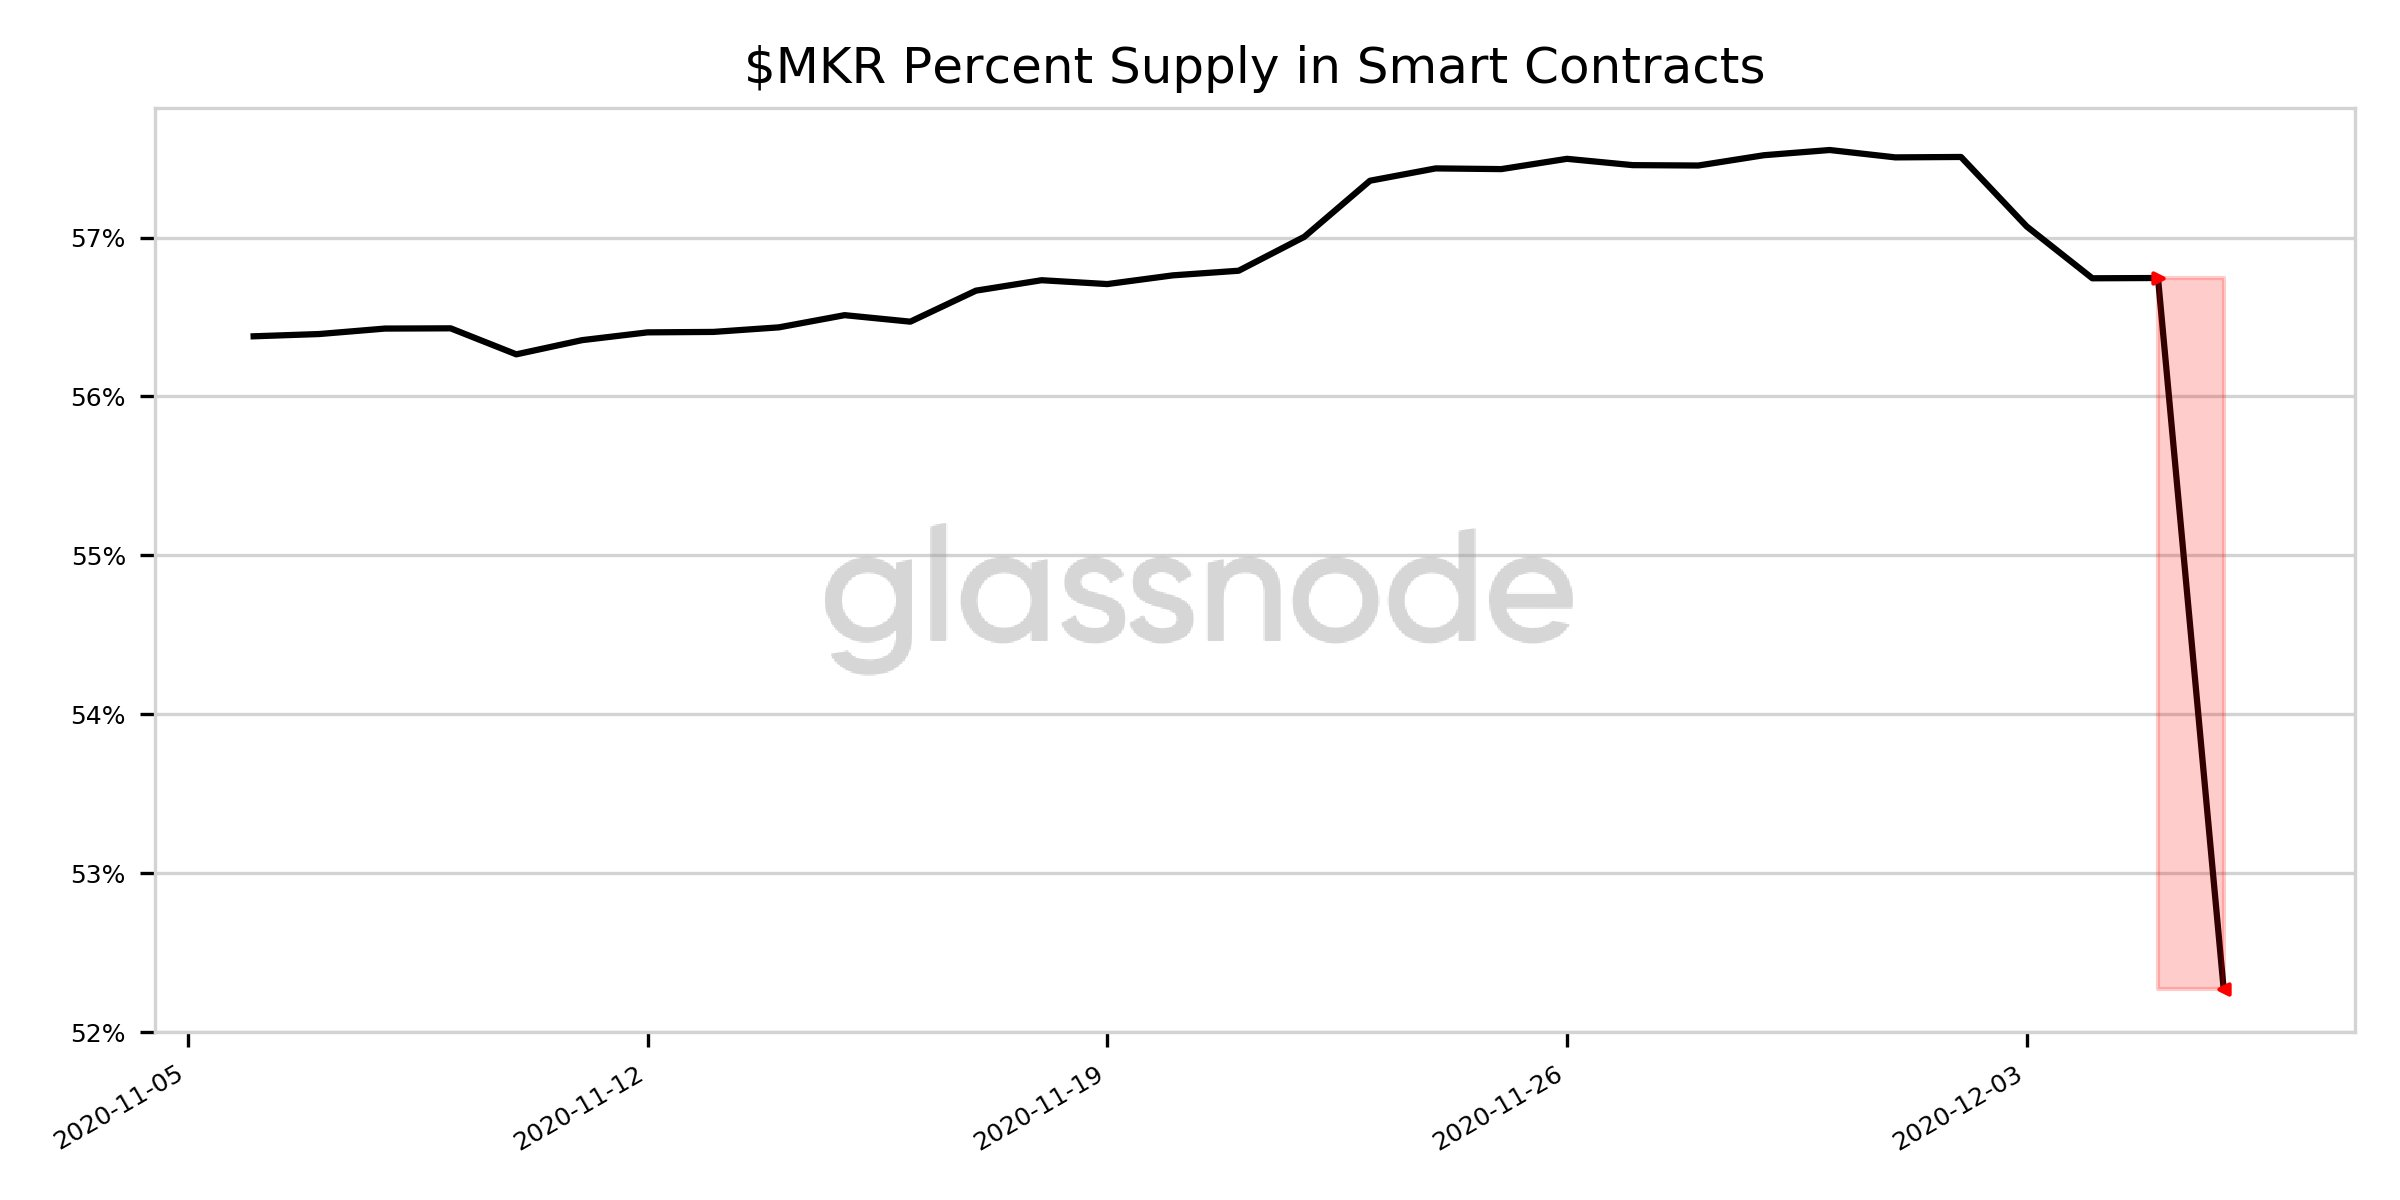 MakerDao (MKR) Percent Balance of Top 1% Addresses reached a 3-year high, says Glassnode